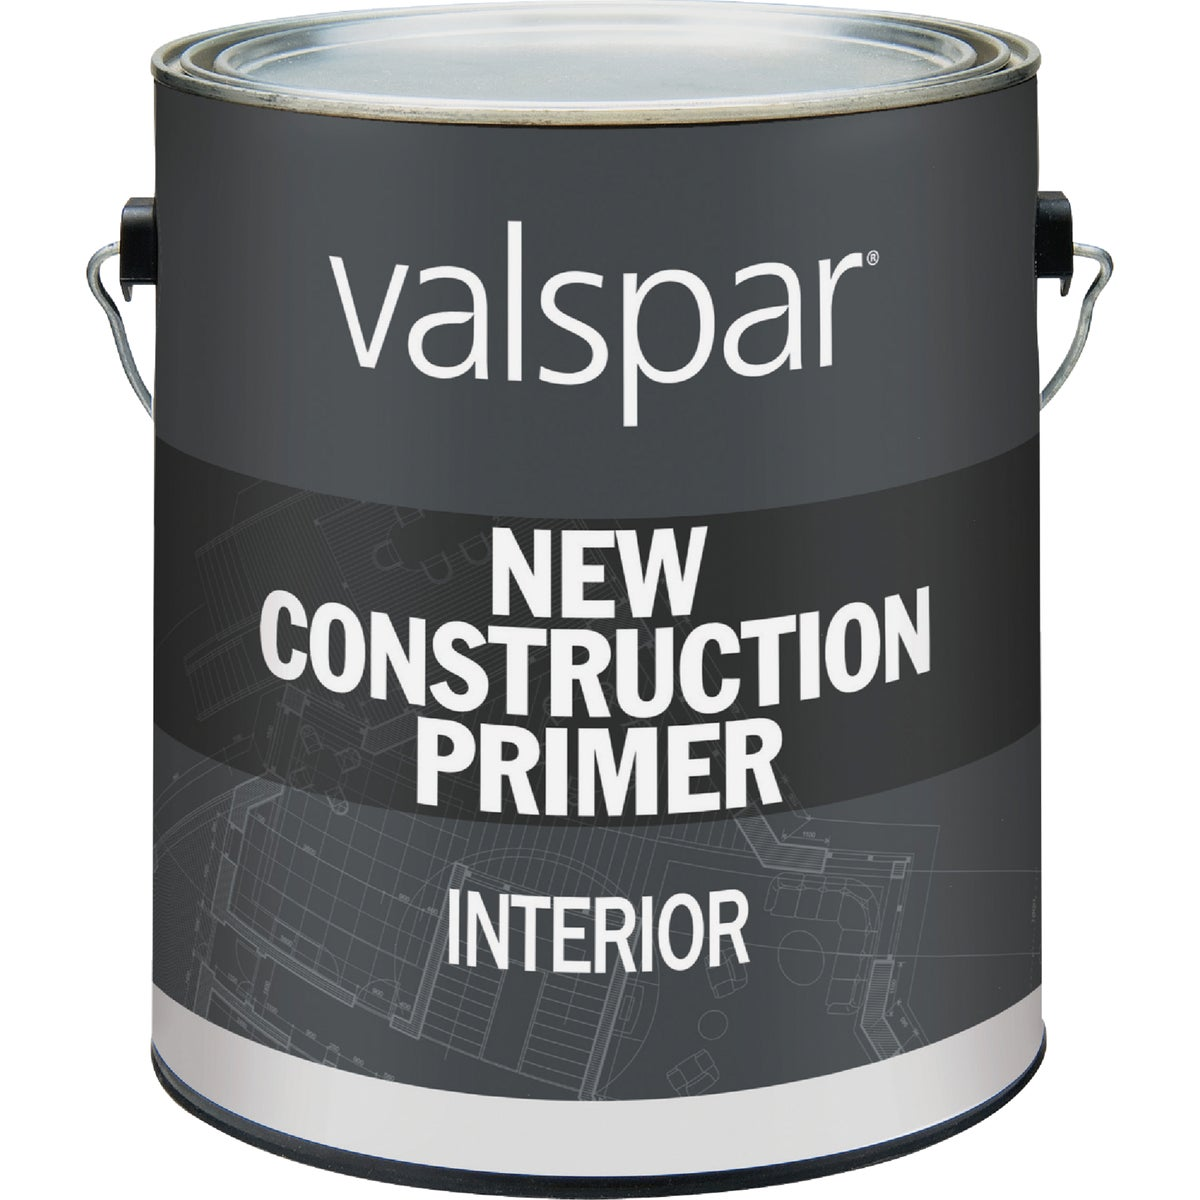 INT CONSTRUCTION PRIMER - 045.0011287.007 by Valspar Corp